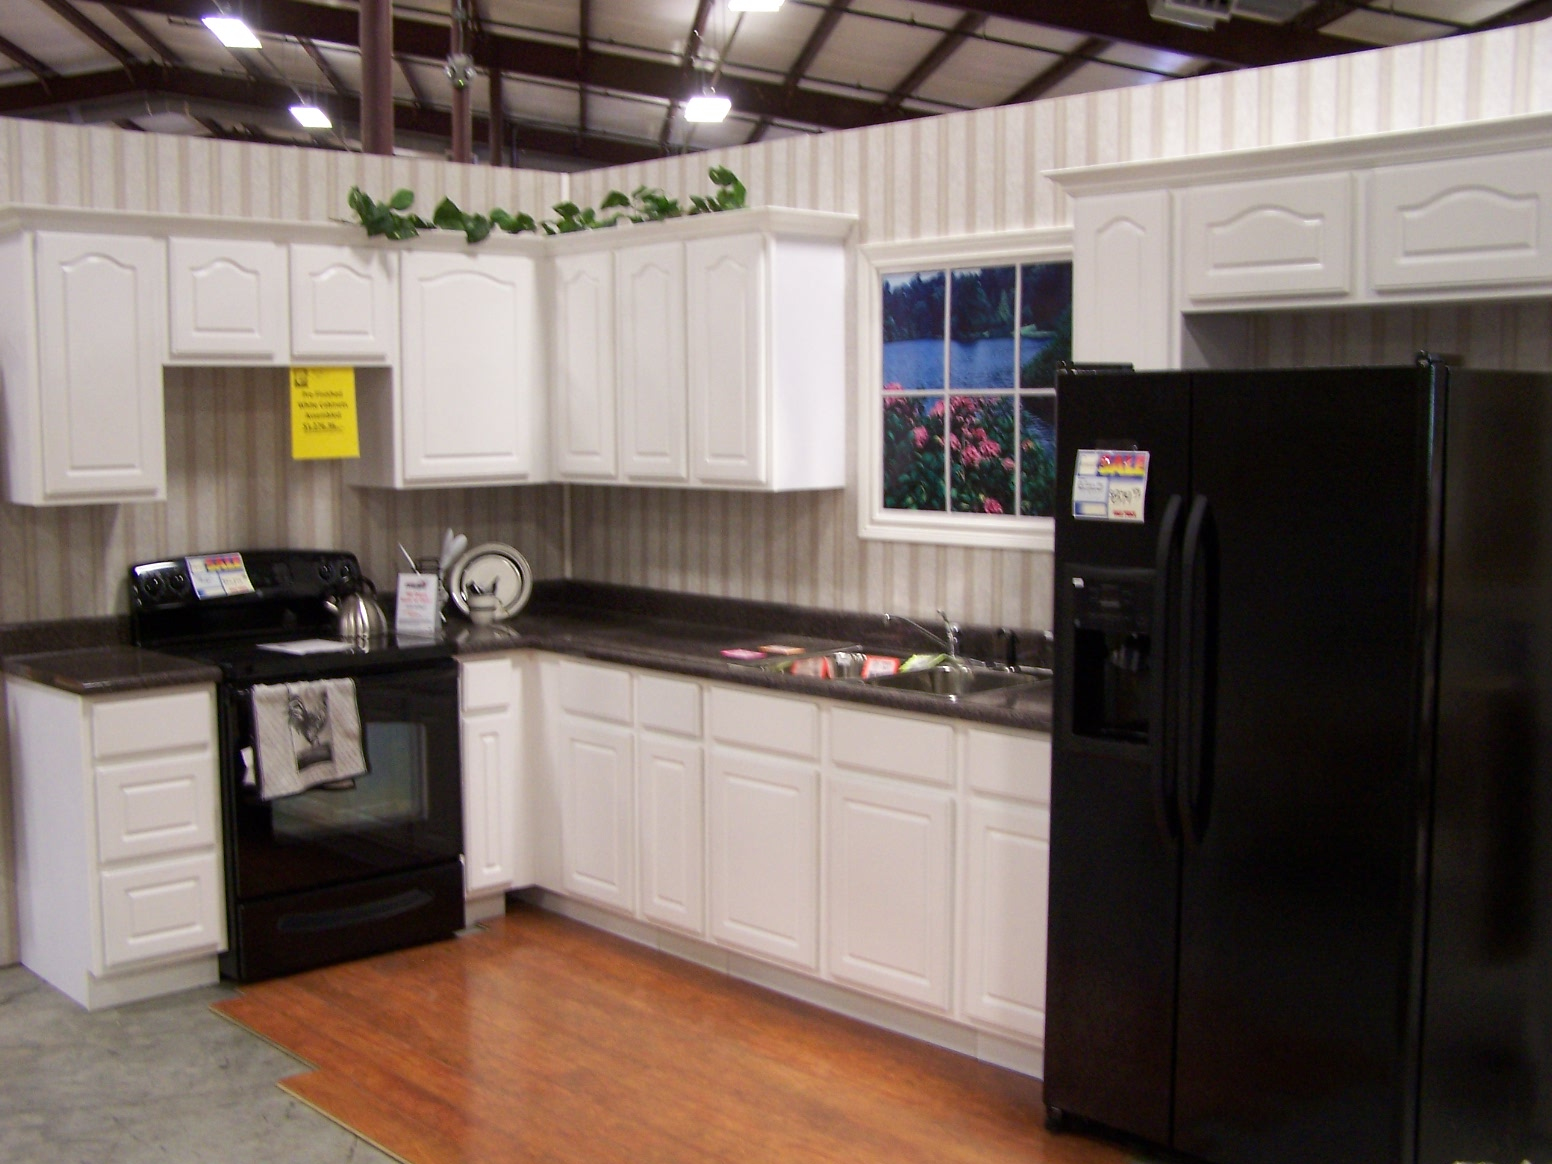 Lovable Kitchen American Woodmark Cabinets In White With Granite Countertop And Black Stove And Fridge For Kitchen Decor Ideas